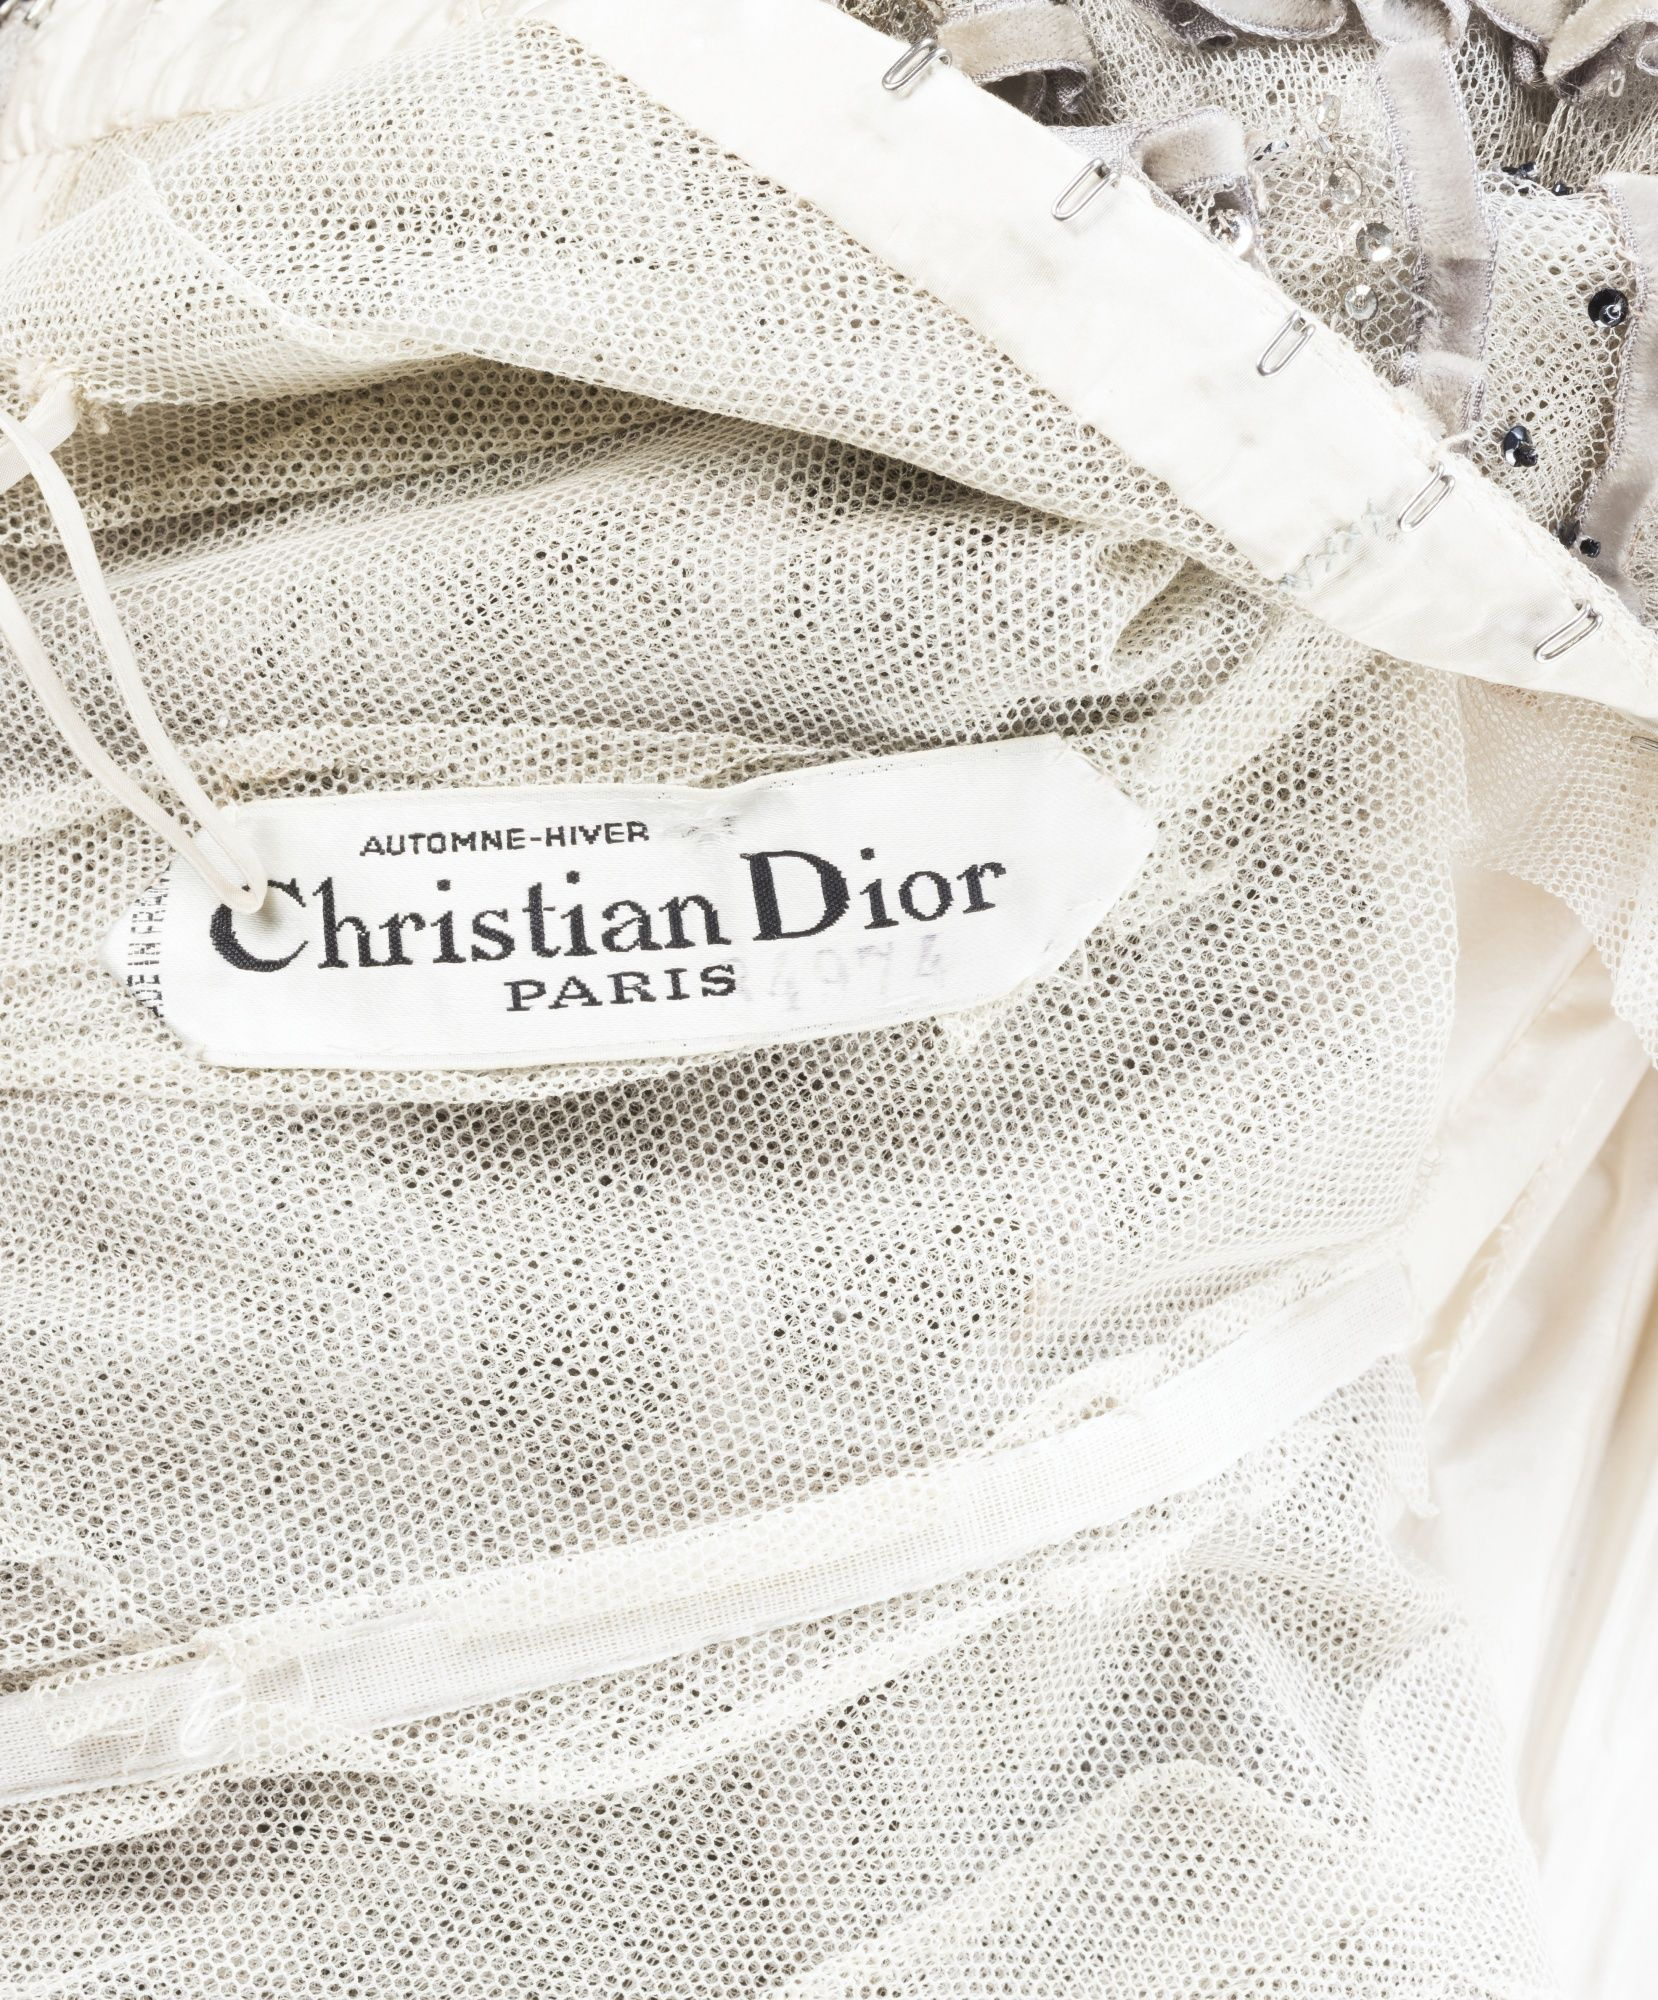 Christian dior haute couture automne hiver 1957 1958 for Haute couture labels